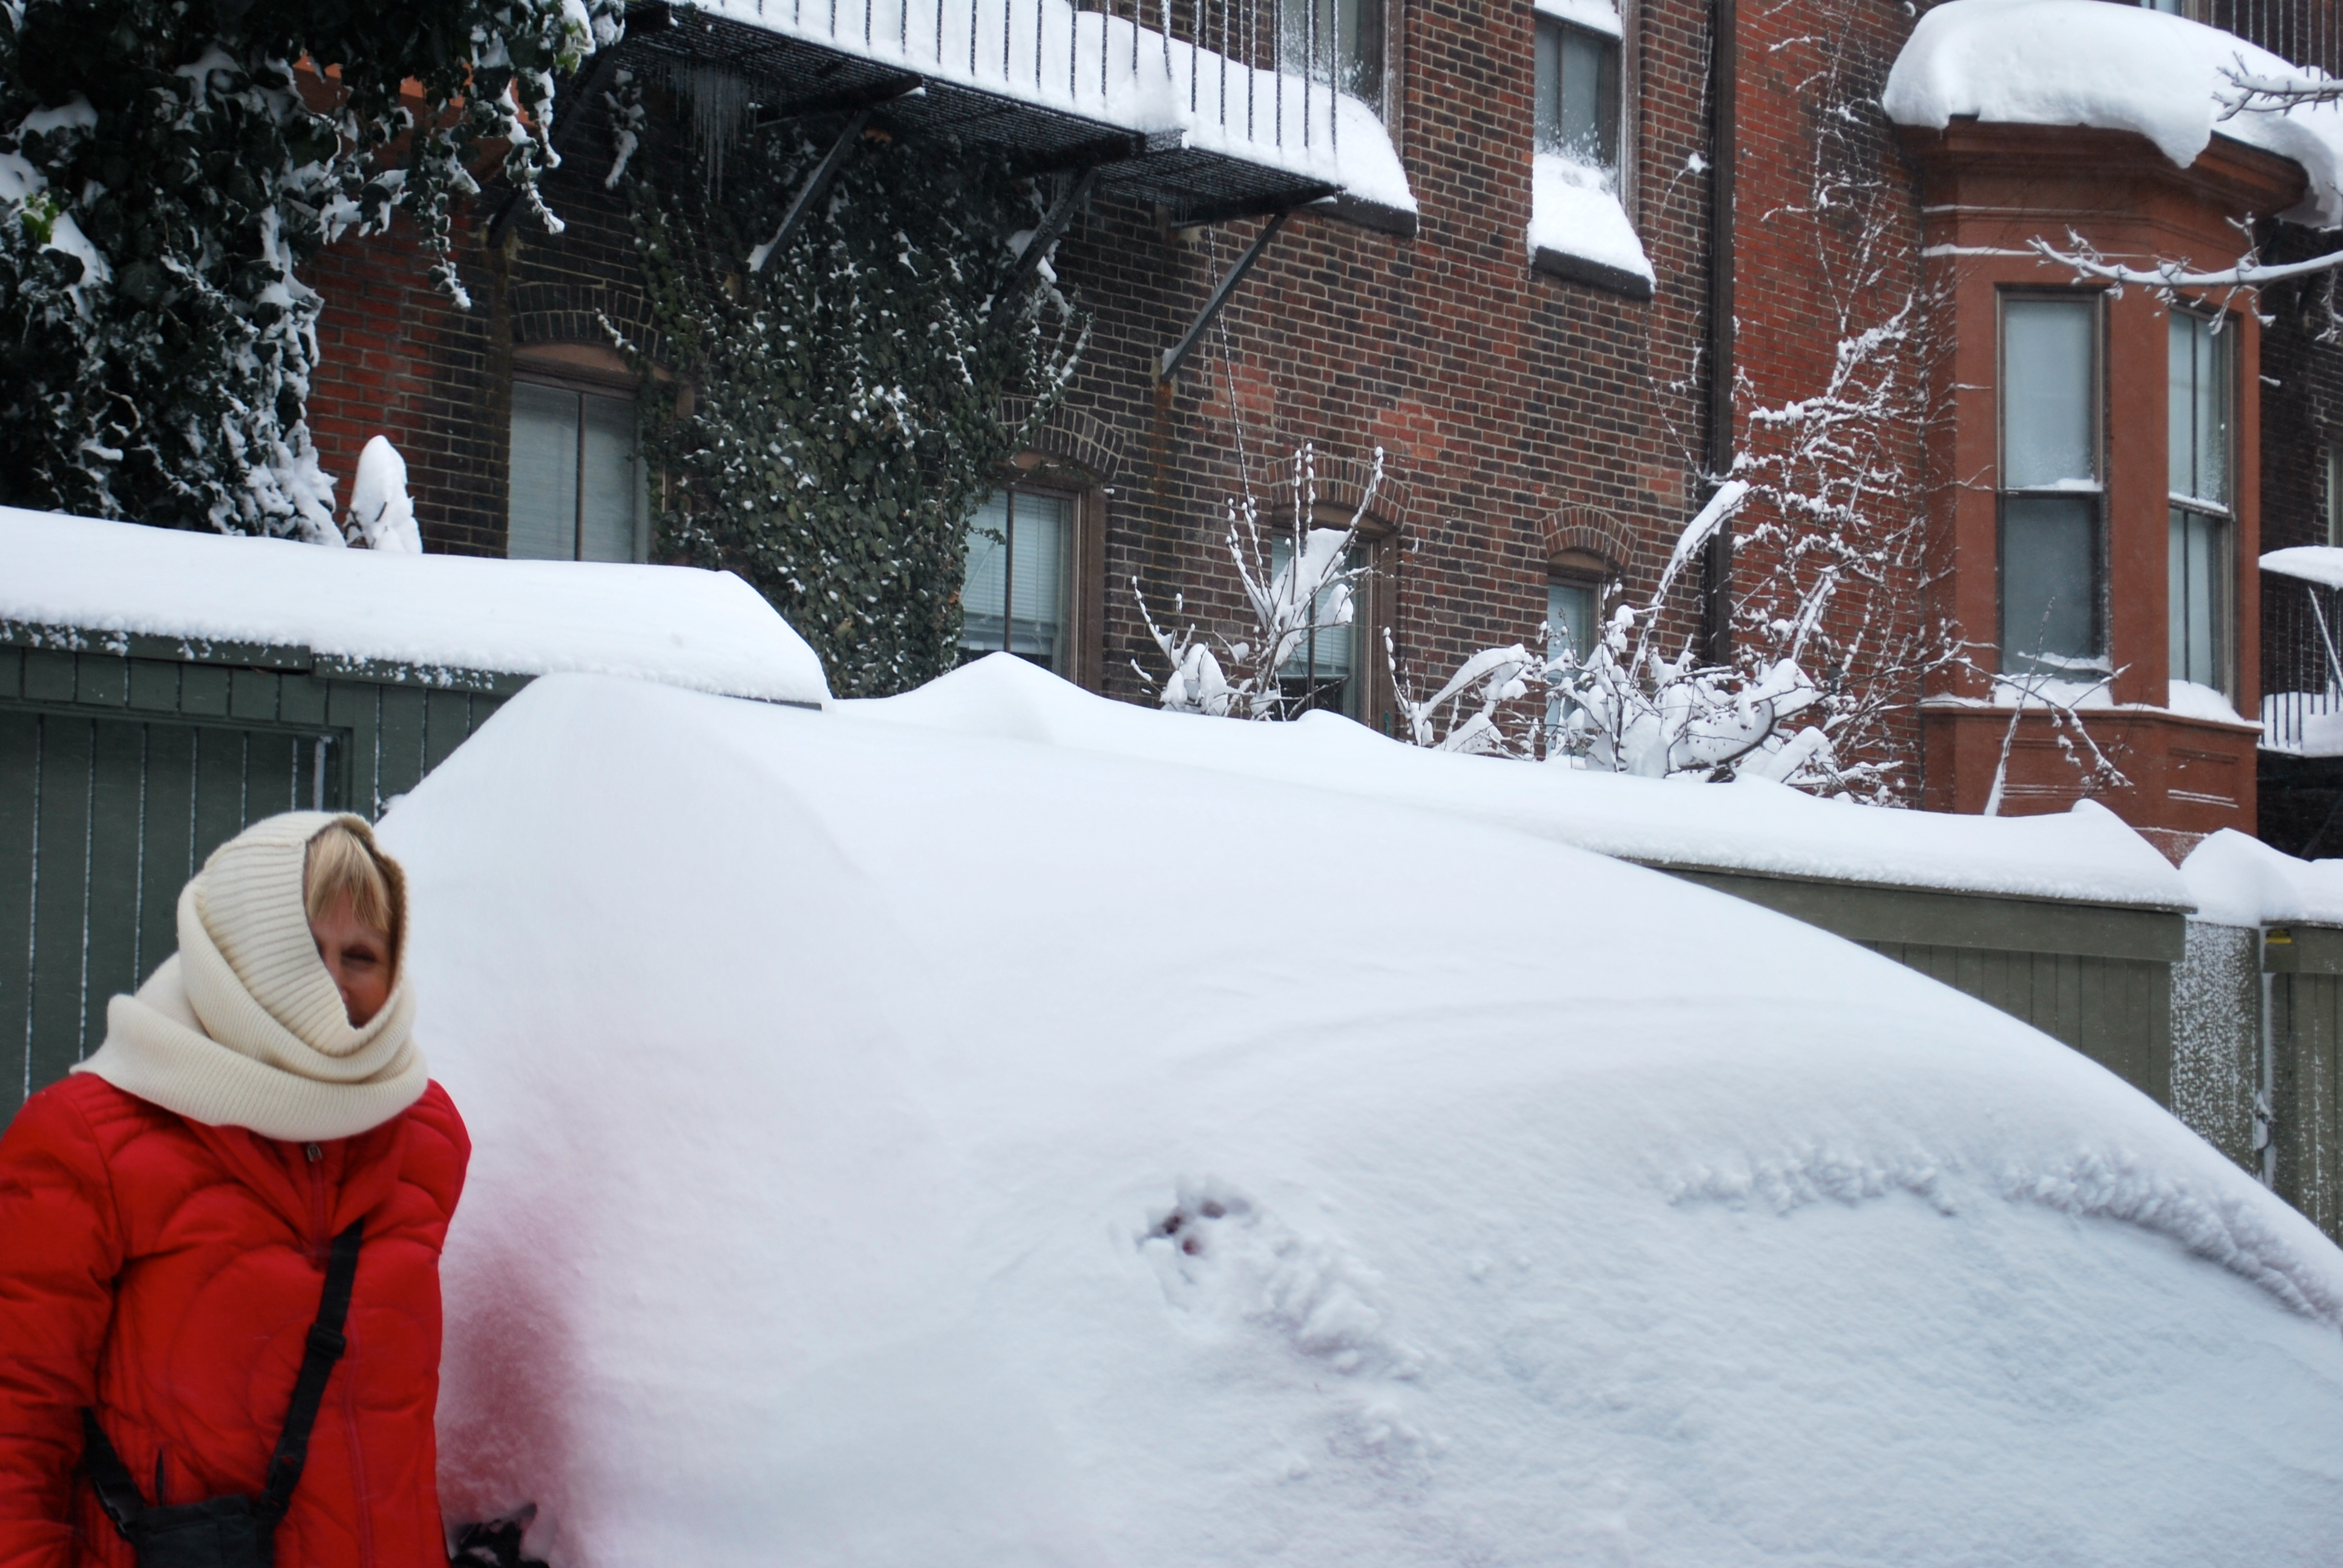 Blonde woman at car with snow on it in Boston